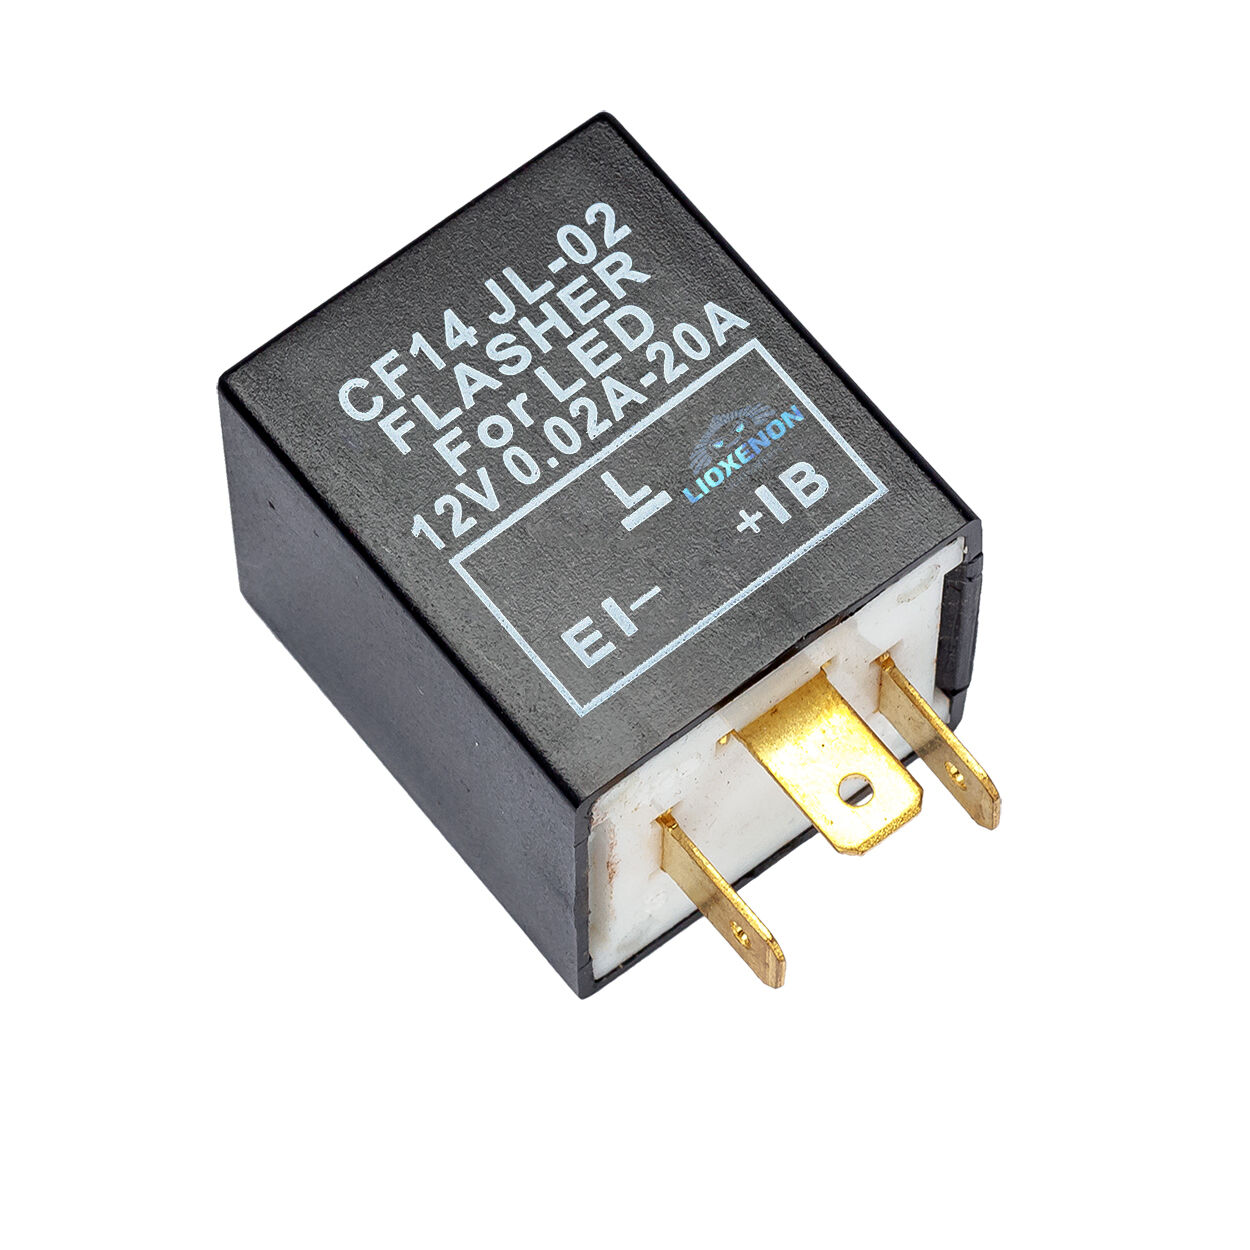 Cf also O likewise Cf E Af E C Ac   Versionid S Uocu together with F C B C D E Cf D E Eb B E C F E Edf A C E Aeb together with Pcs Cf Jl Led Flasher Pin Electronic. on cf pin led flasher relay fix light turn